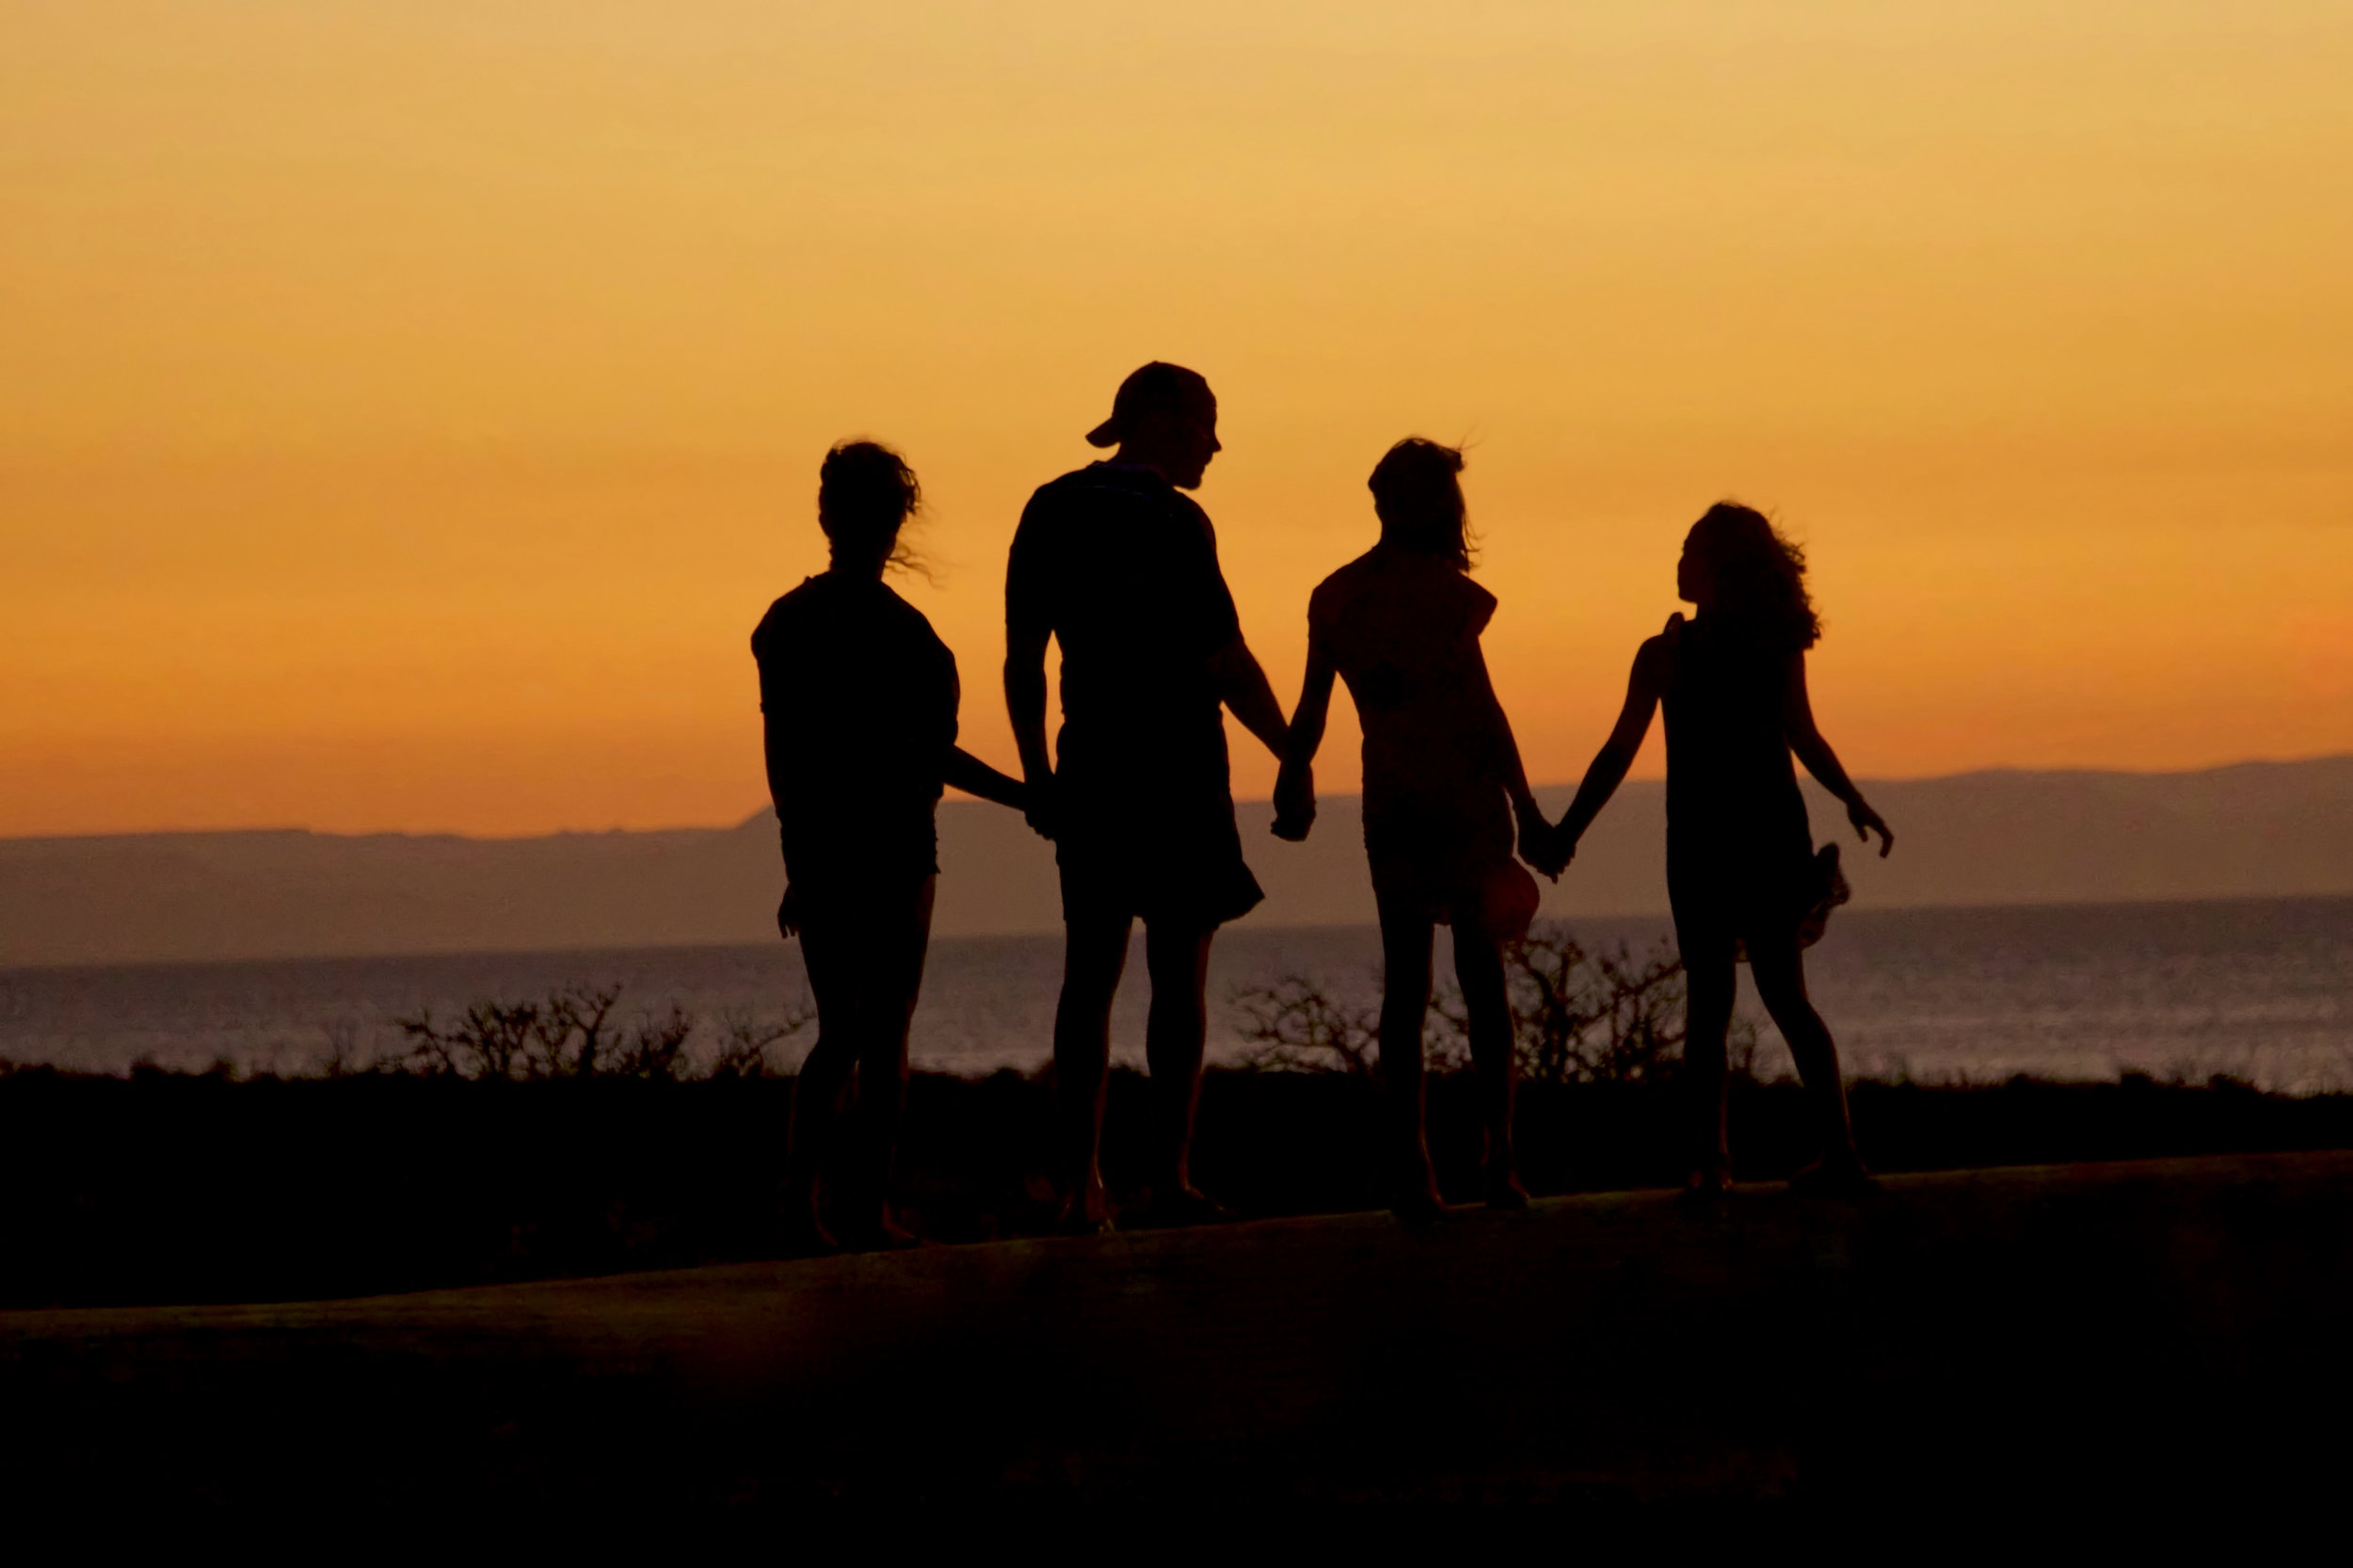 Who can benefit from family counseling? - • Parents, Grandparents, Children, Siblings, extended family, blended family